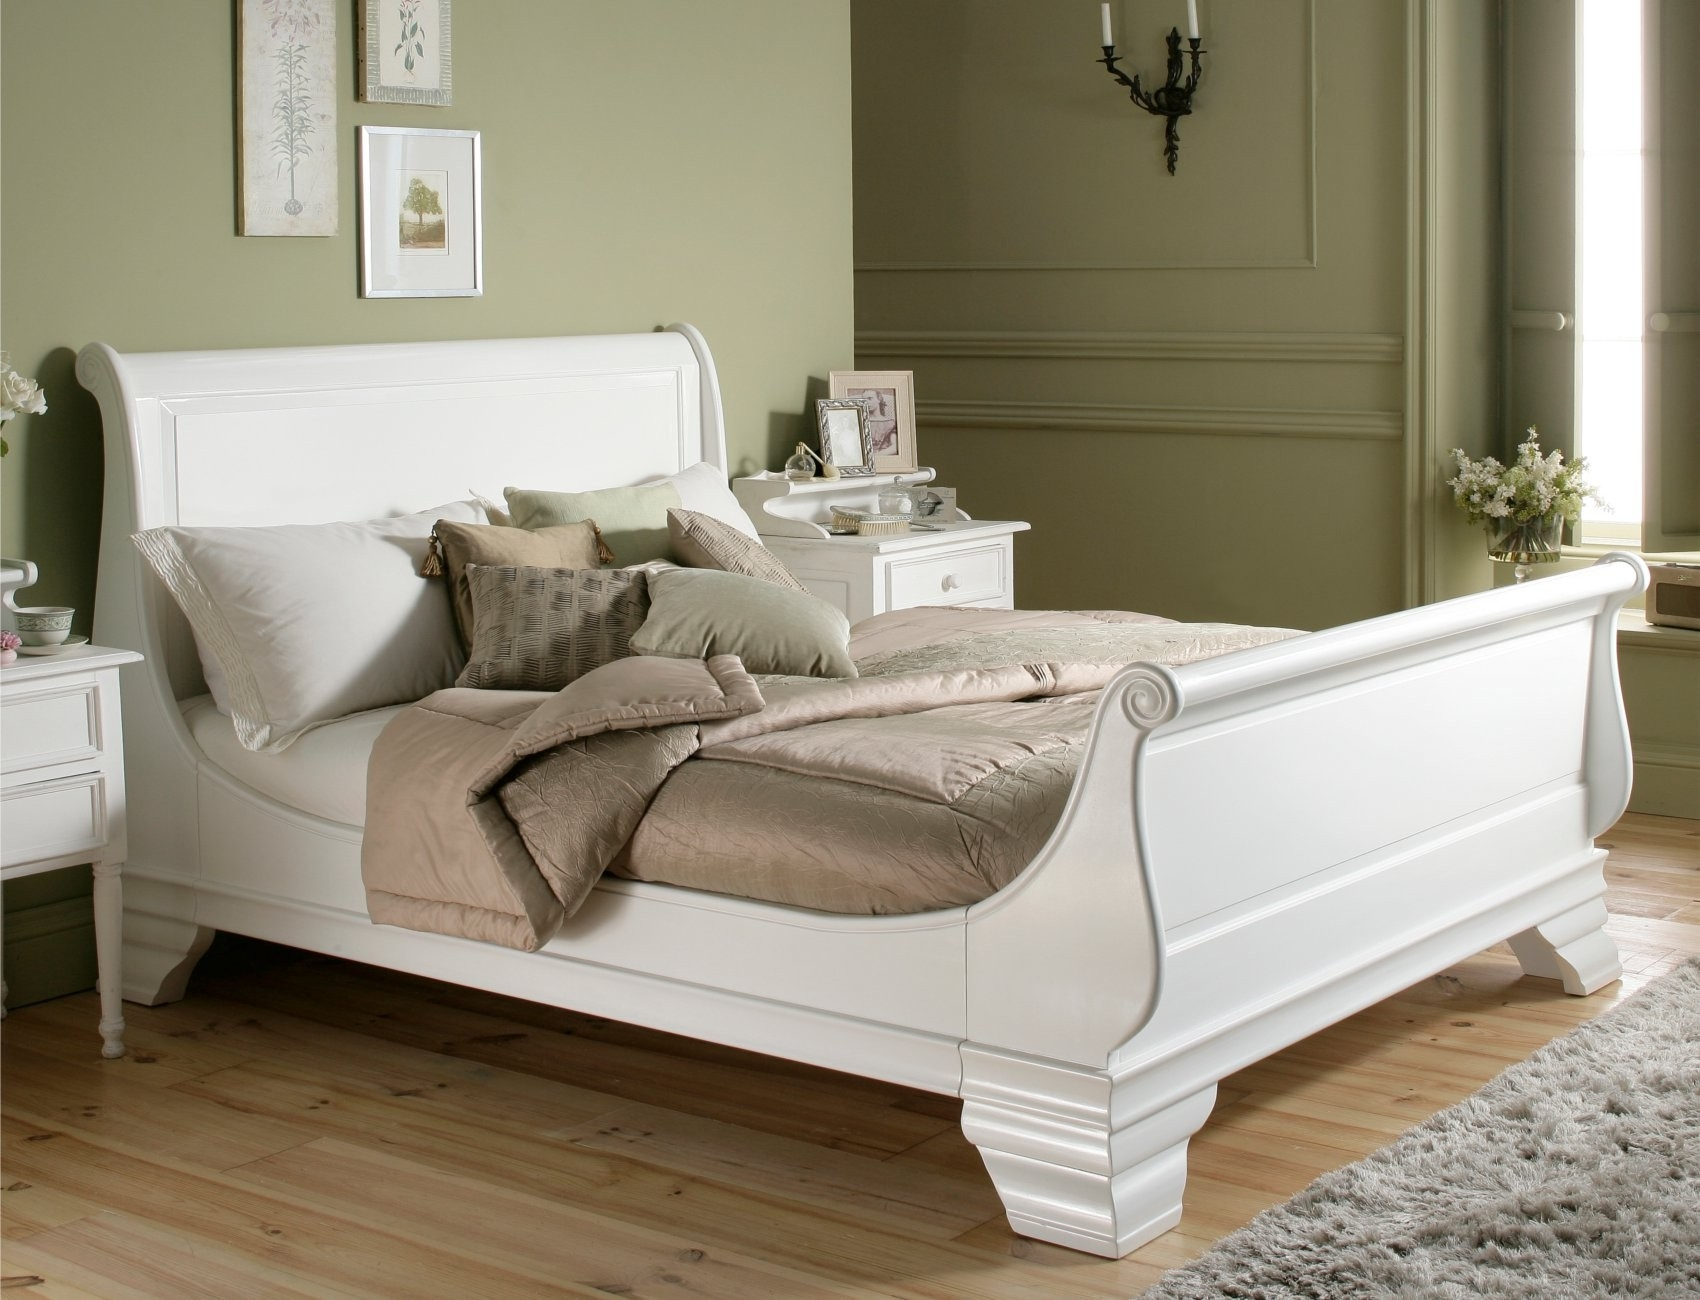 White Wooden Bed Frames King Size